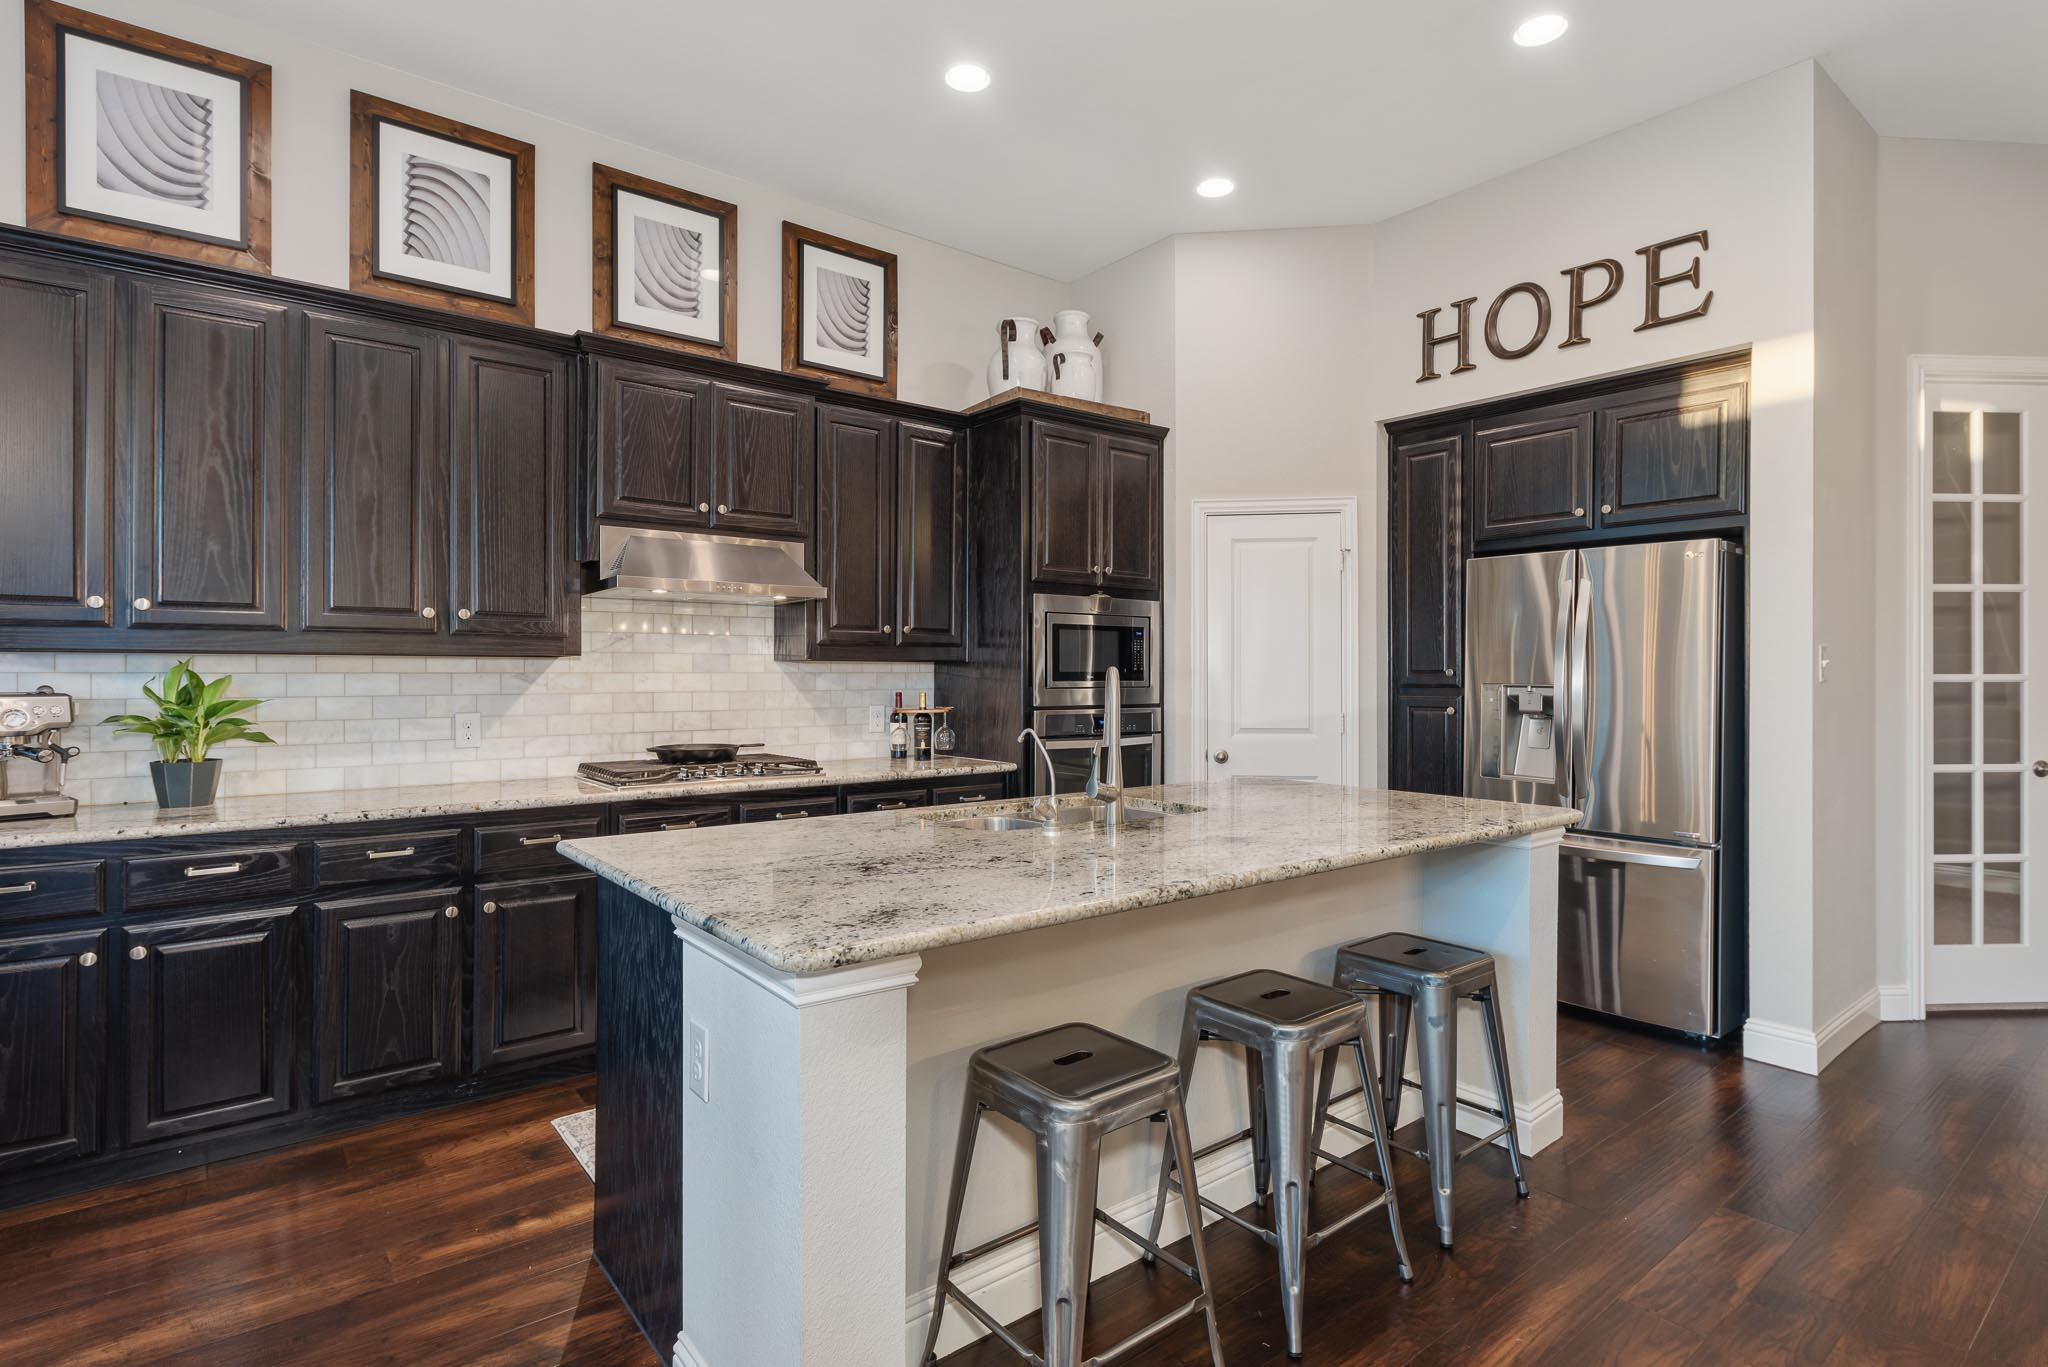 Sharp Frame Media offers high quality real estate photography to Dallas, Fort Worth, Flower Mound, and Wichita Falls